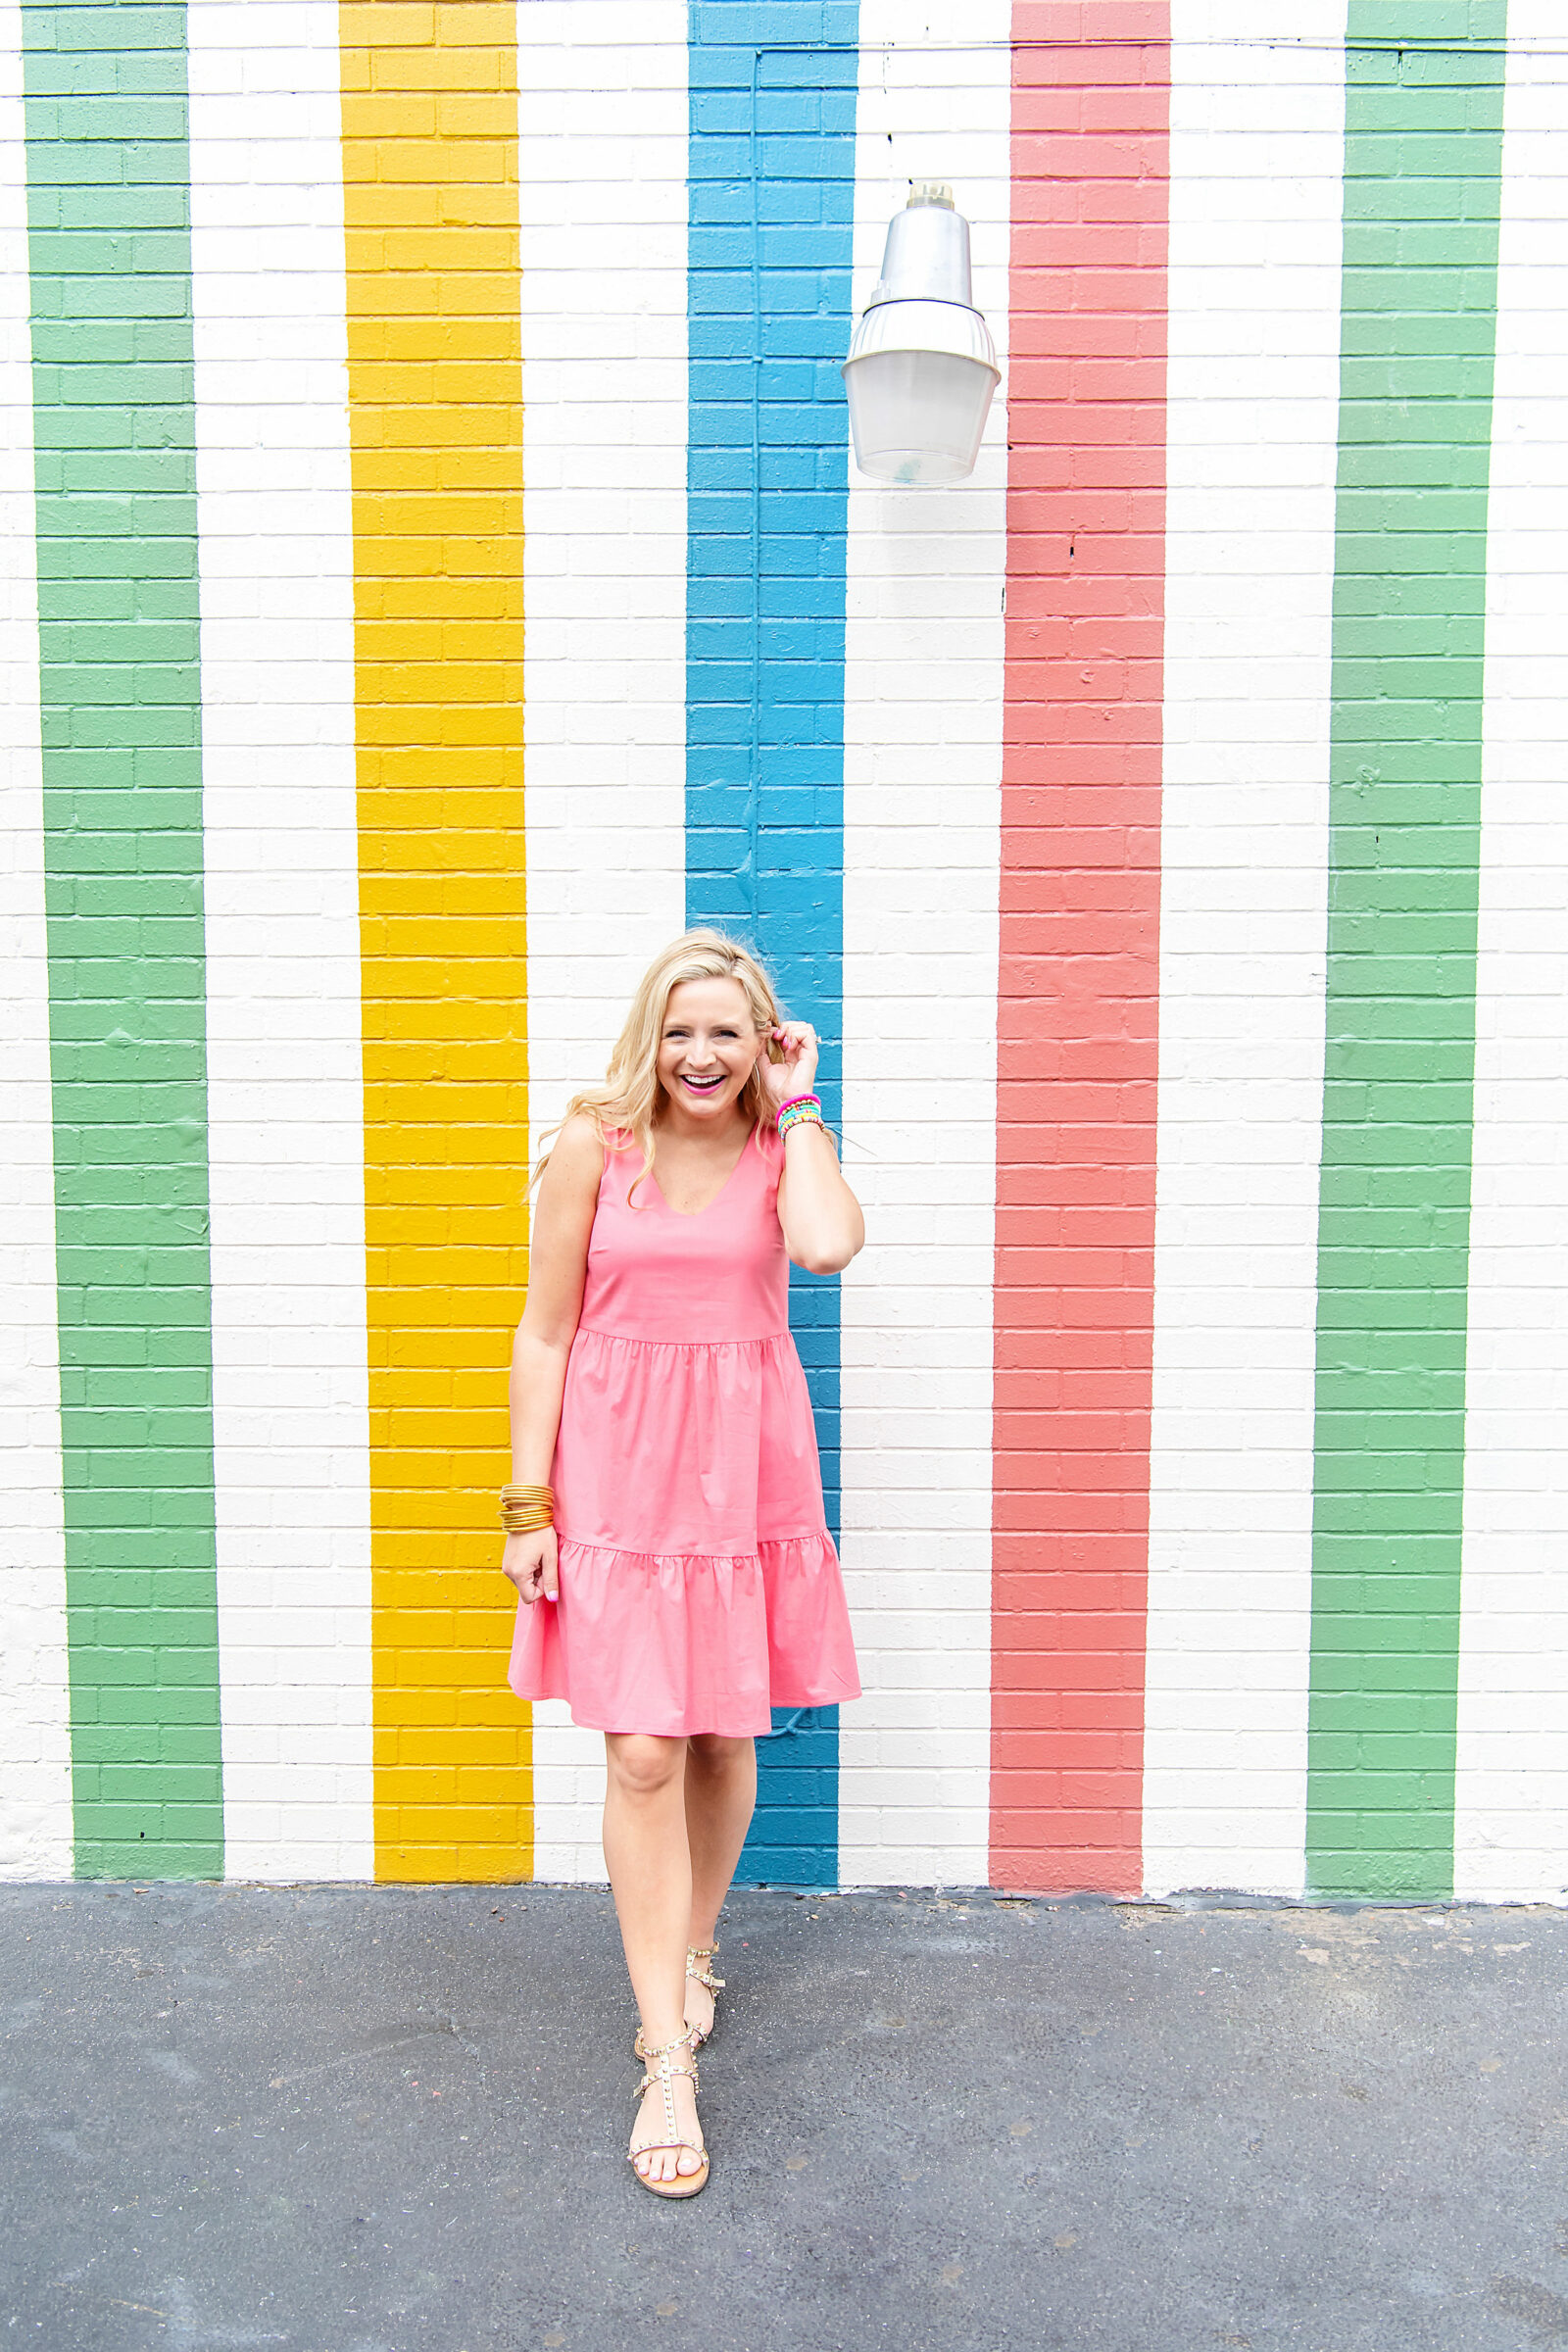 pink graduation dress | Graduation Dress by popular Houston fashion blog, The House of Fancy: image of a woman standing in front of a multi color strip mural and wearing a Gibsonlook Ashley tiered poplin dress, studded gold strap sandals, gold bracelets and colorful stretch bracelets.